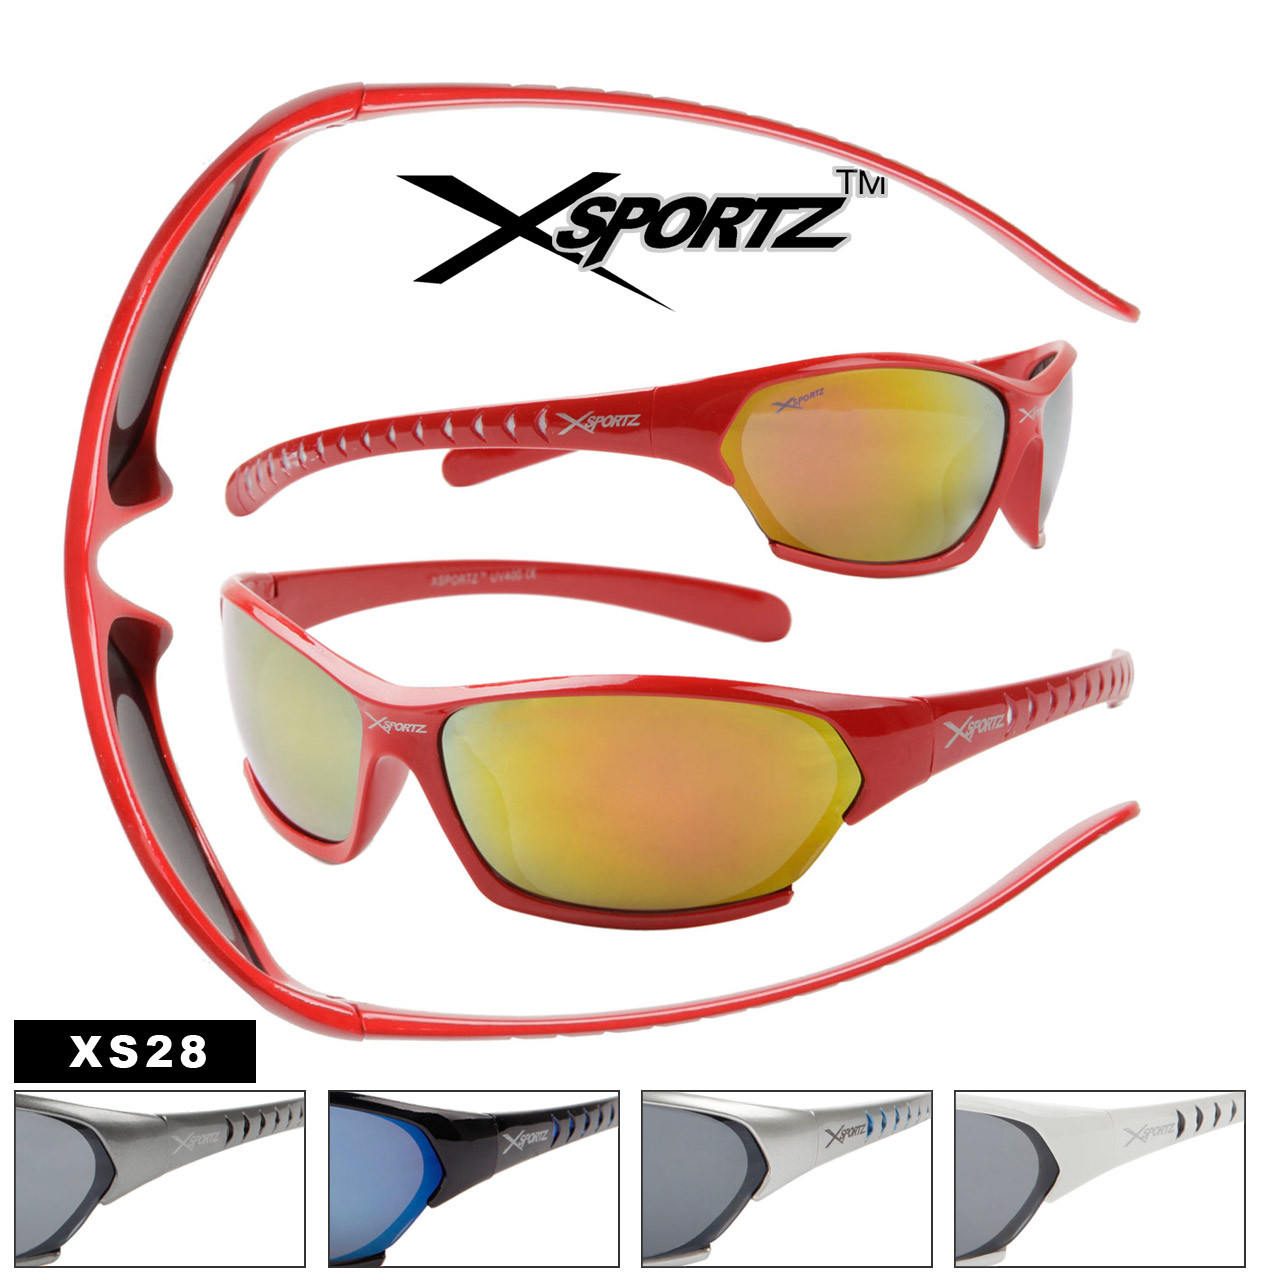 Wholesale Xsportz Sport Sunglasses XS28